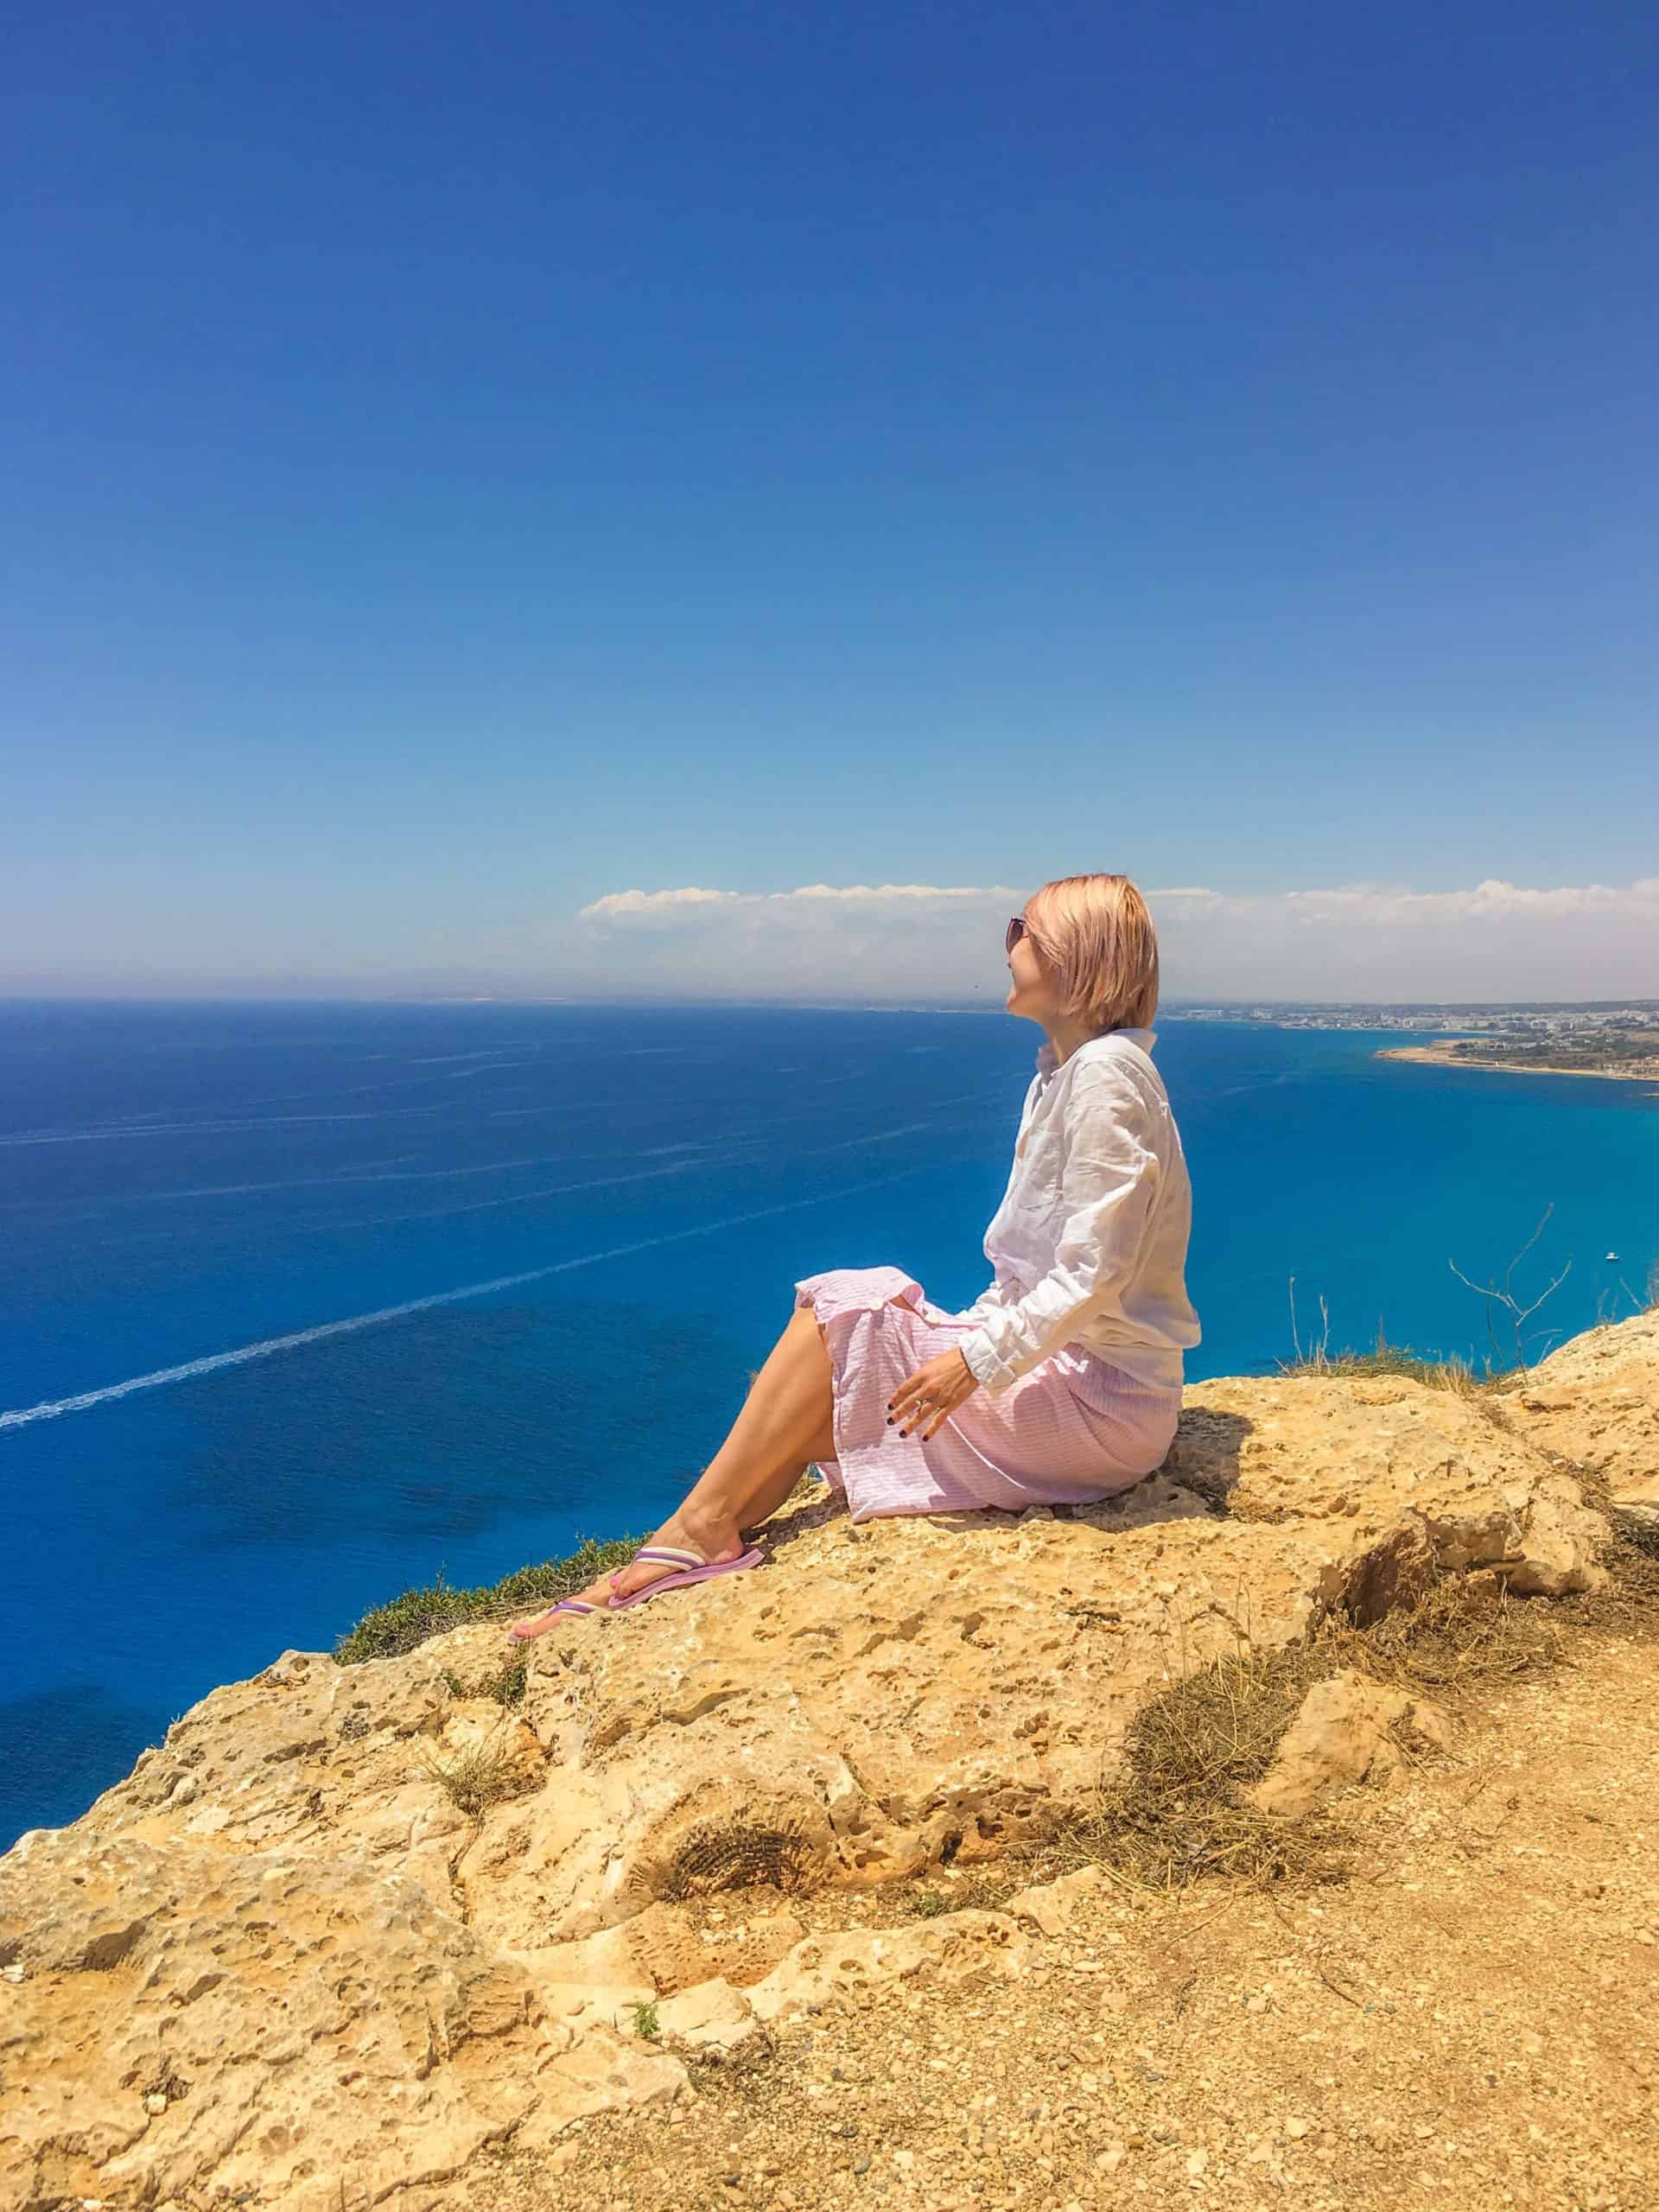 Make your Cyprus travel bucket list and see the most Instagrammable places in Cyprus. Check this out if you're wandering where to go in Cyprus, looking for Cyprus travel tips, and Cyprus travel photography. #cyprus #travel #photography #instagram #island